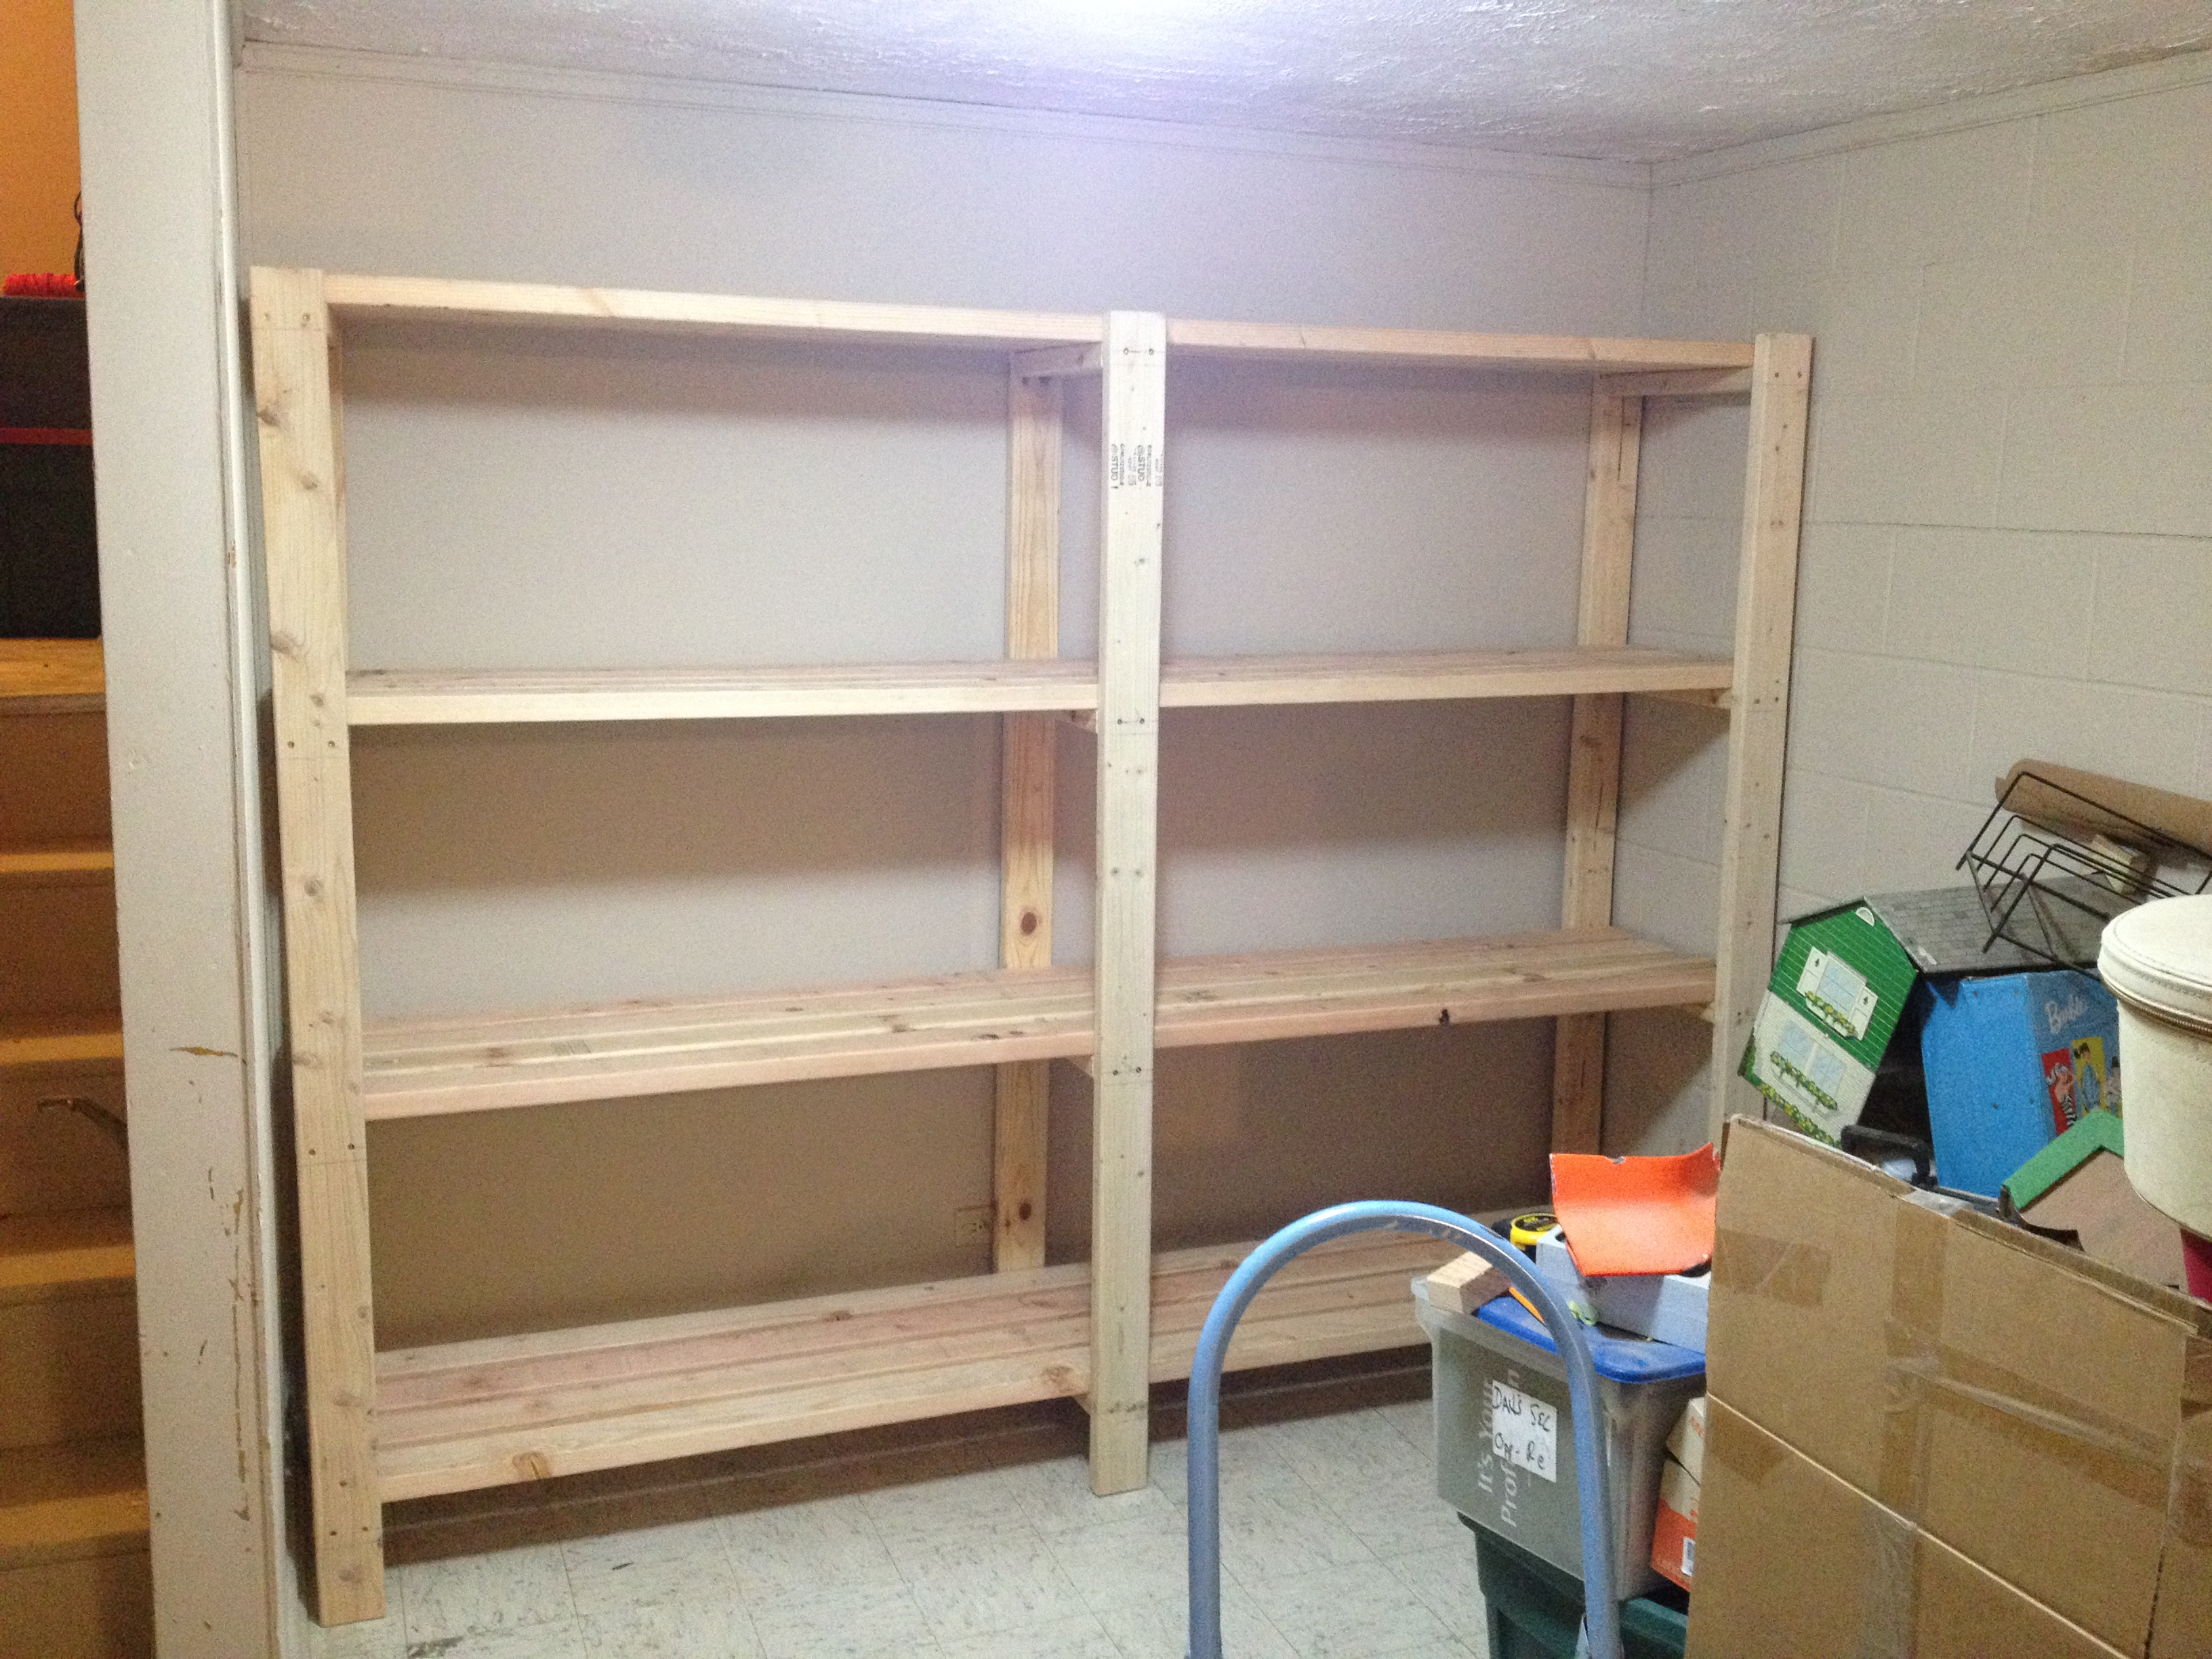 Bon 2 X 4 Garage Shelves Built Into Basement Storage!